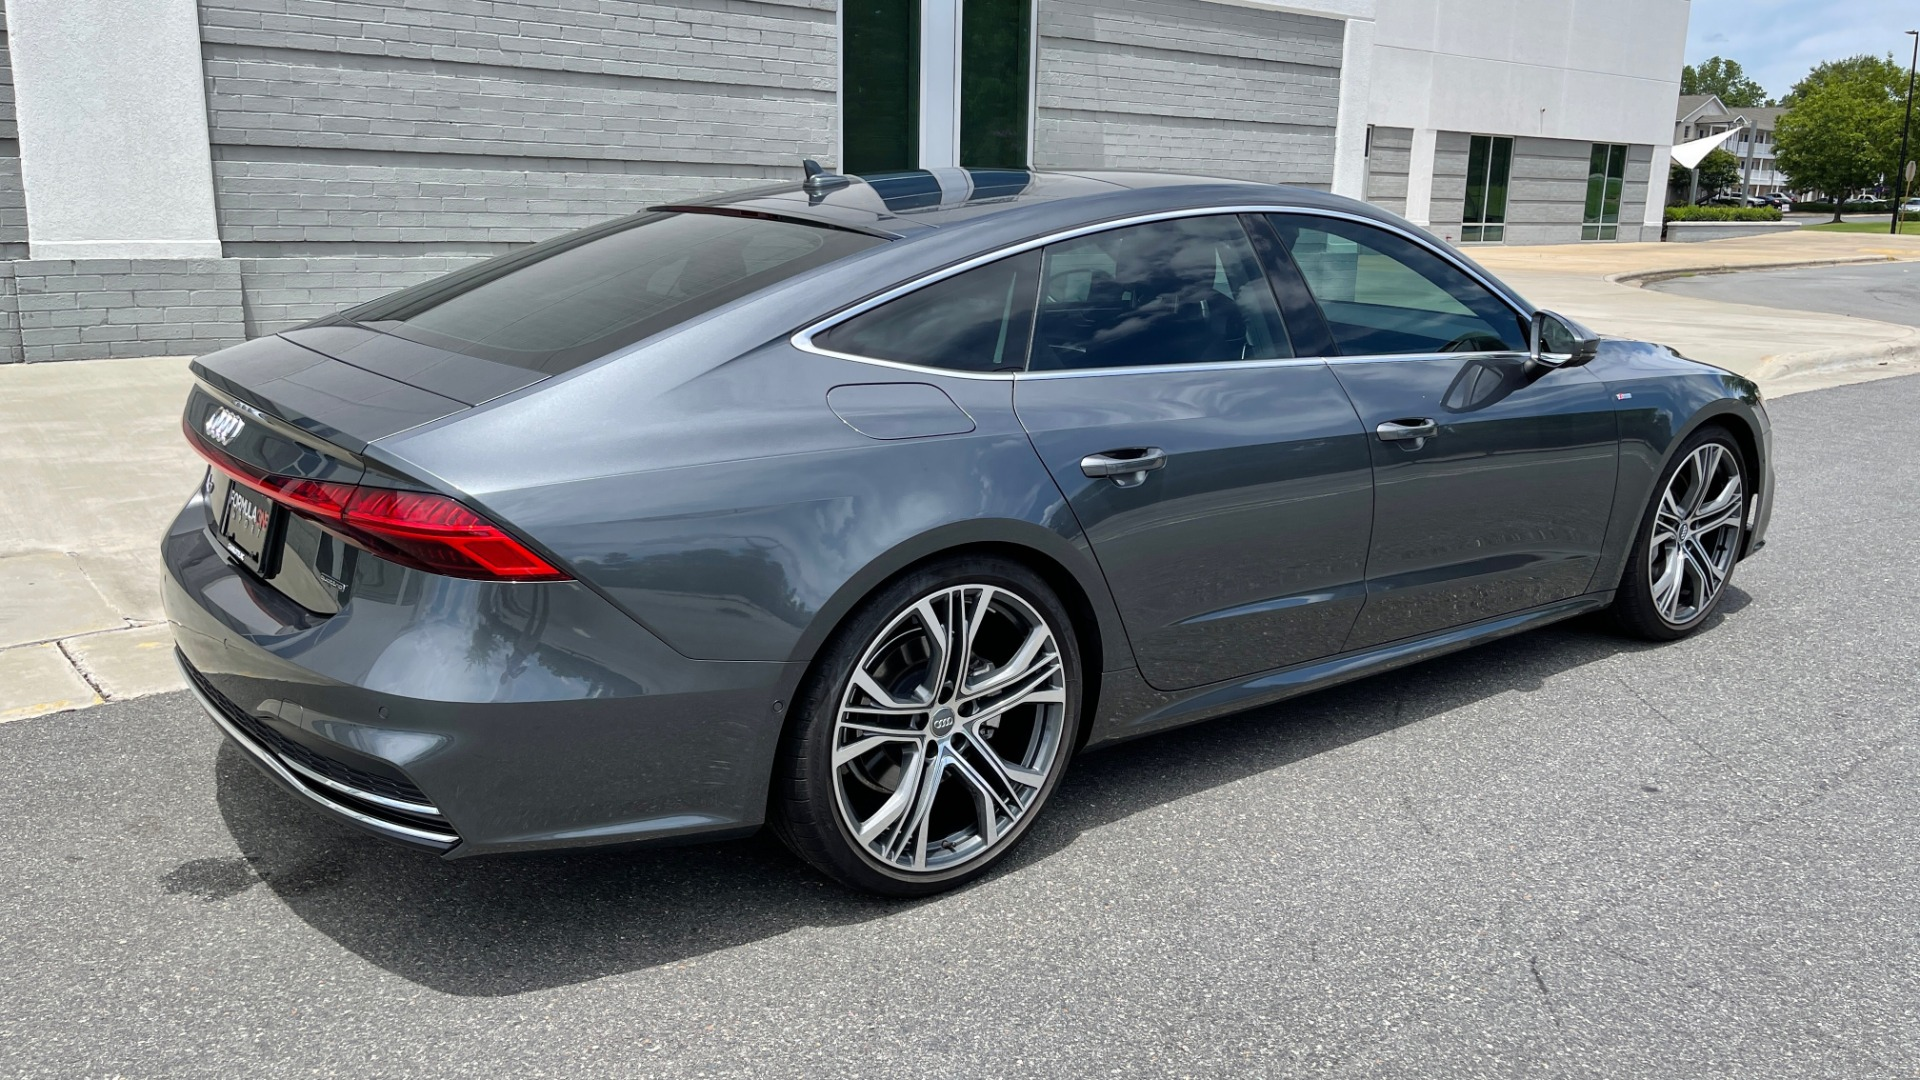 Used 2019 Audi A7 PRESTIGE 55 TFSI 3.0T / NAV / B&O SND / SUNROOF / S-LINE / 21IN WHLS / REAR for sale $66,995 at Formula Imports in Charlotte NC 28227 6